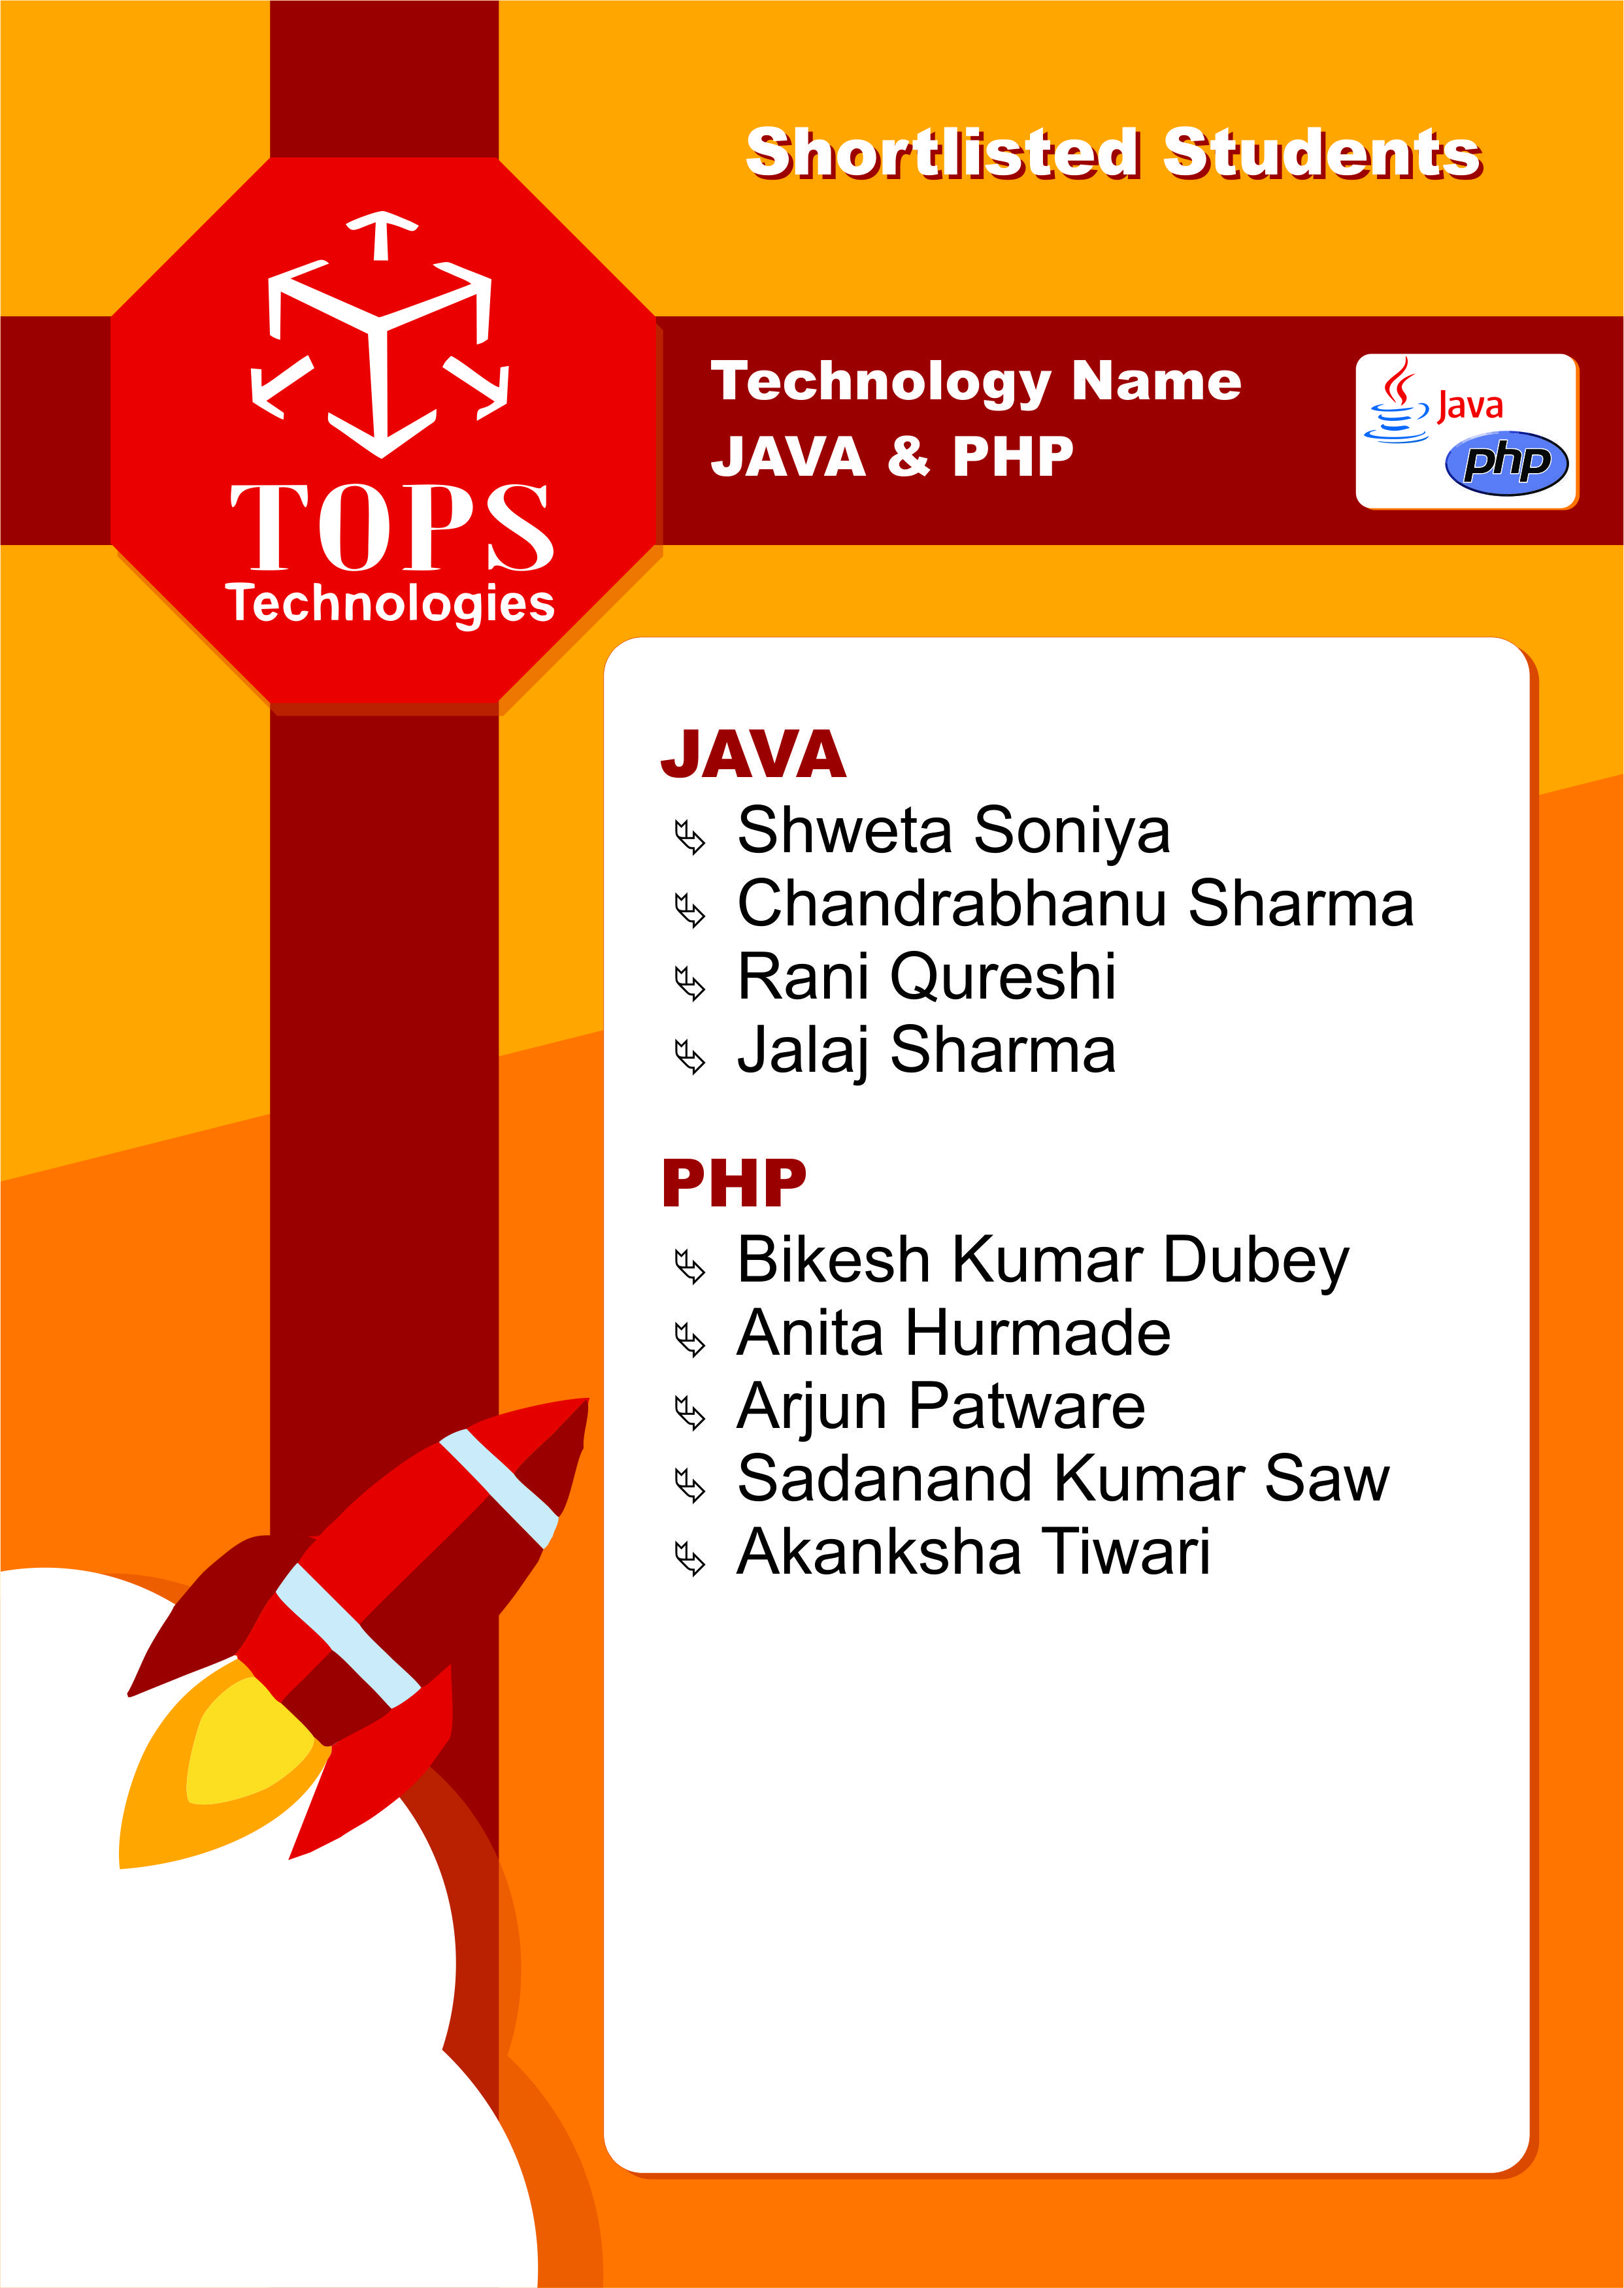 Shortlisted Students Of Bhopal Branch From Tops Technologies Topstechnologies Shortlisted Students Job Student Technology Student Jobs Web Design Training